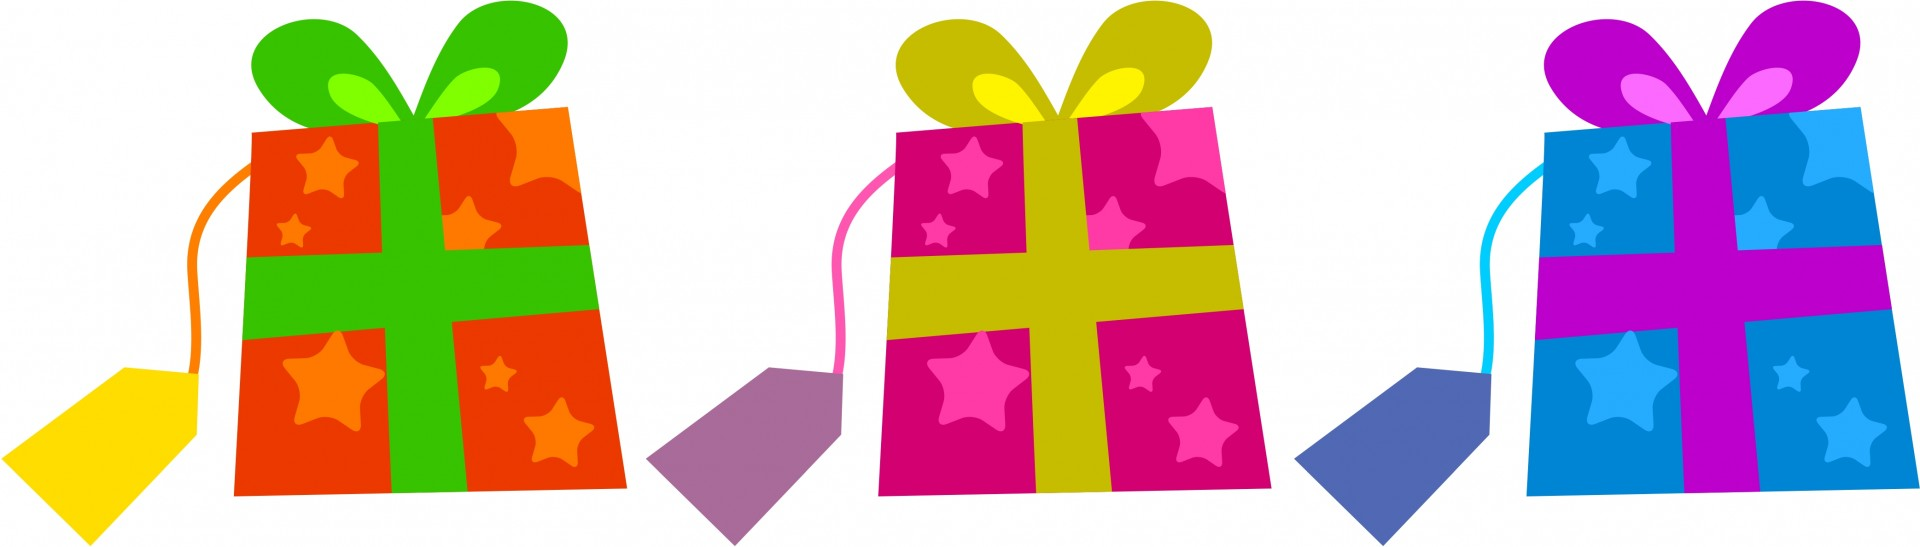 Colourful Gifts Clip Art Free Stock Photo.